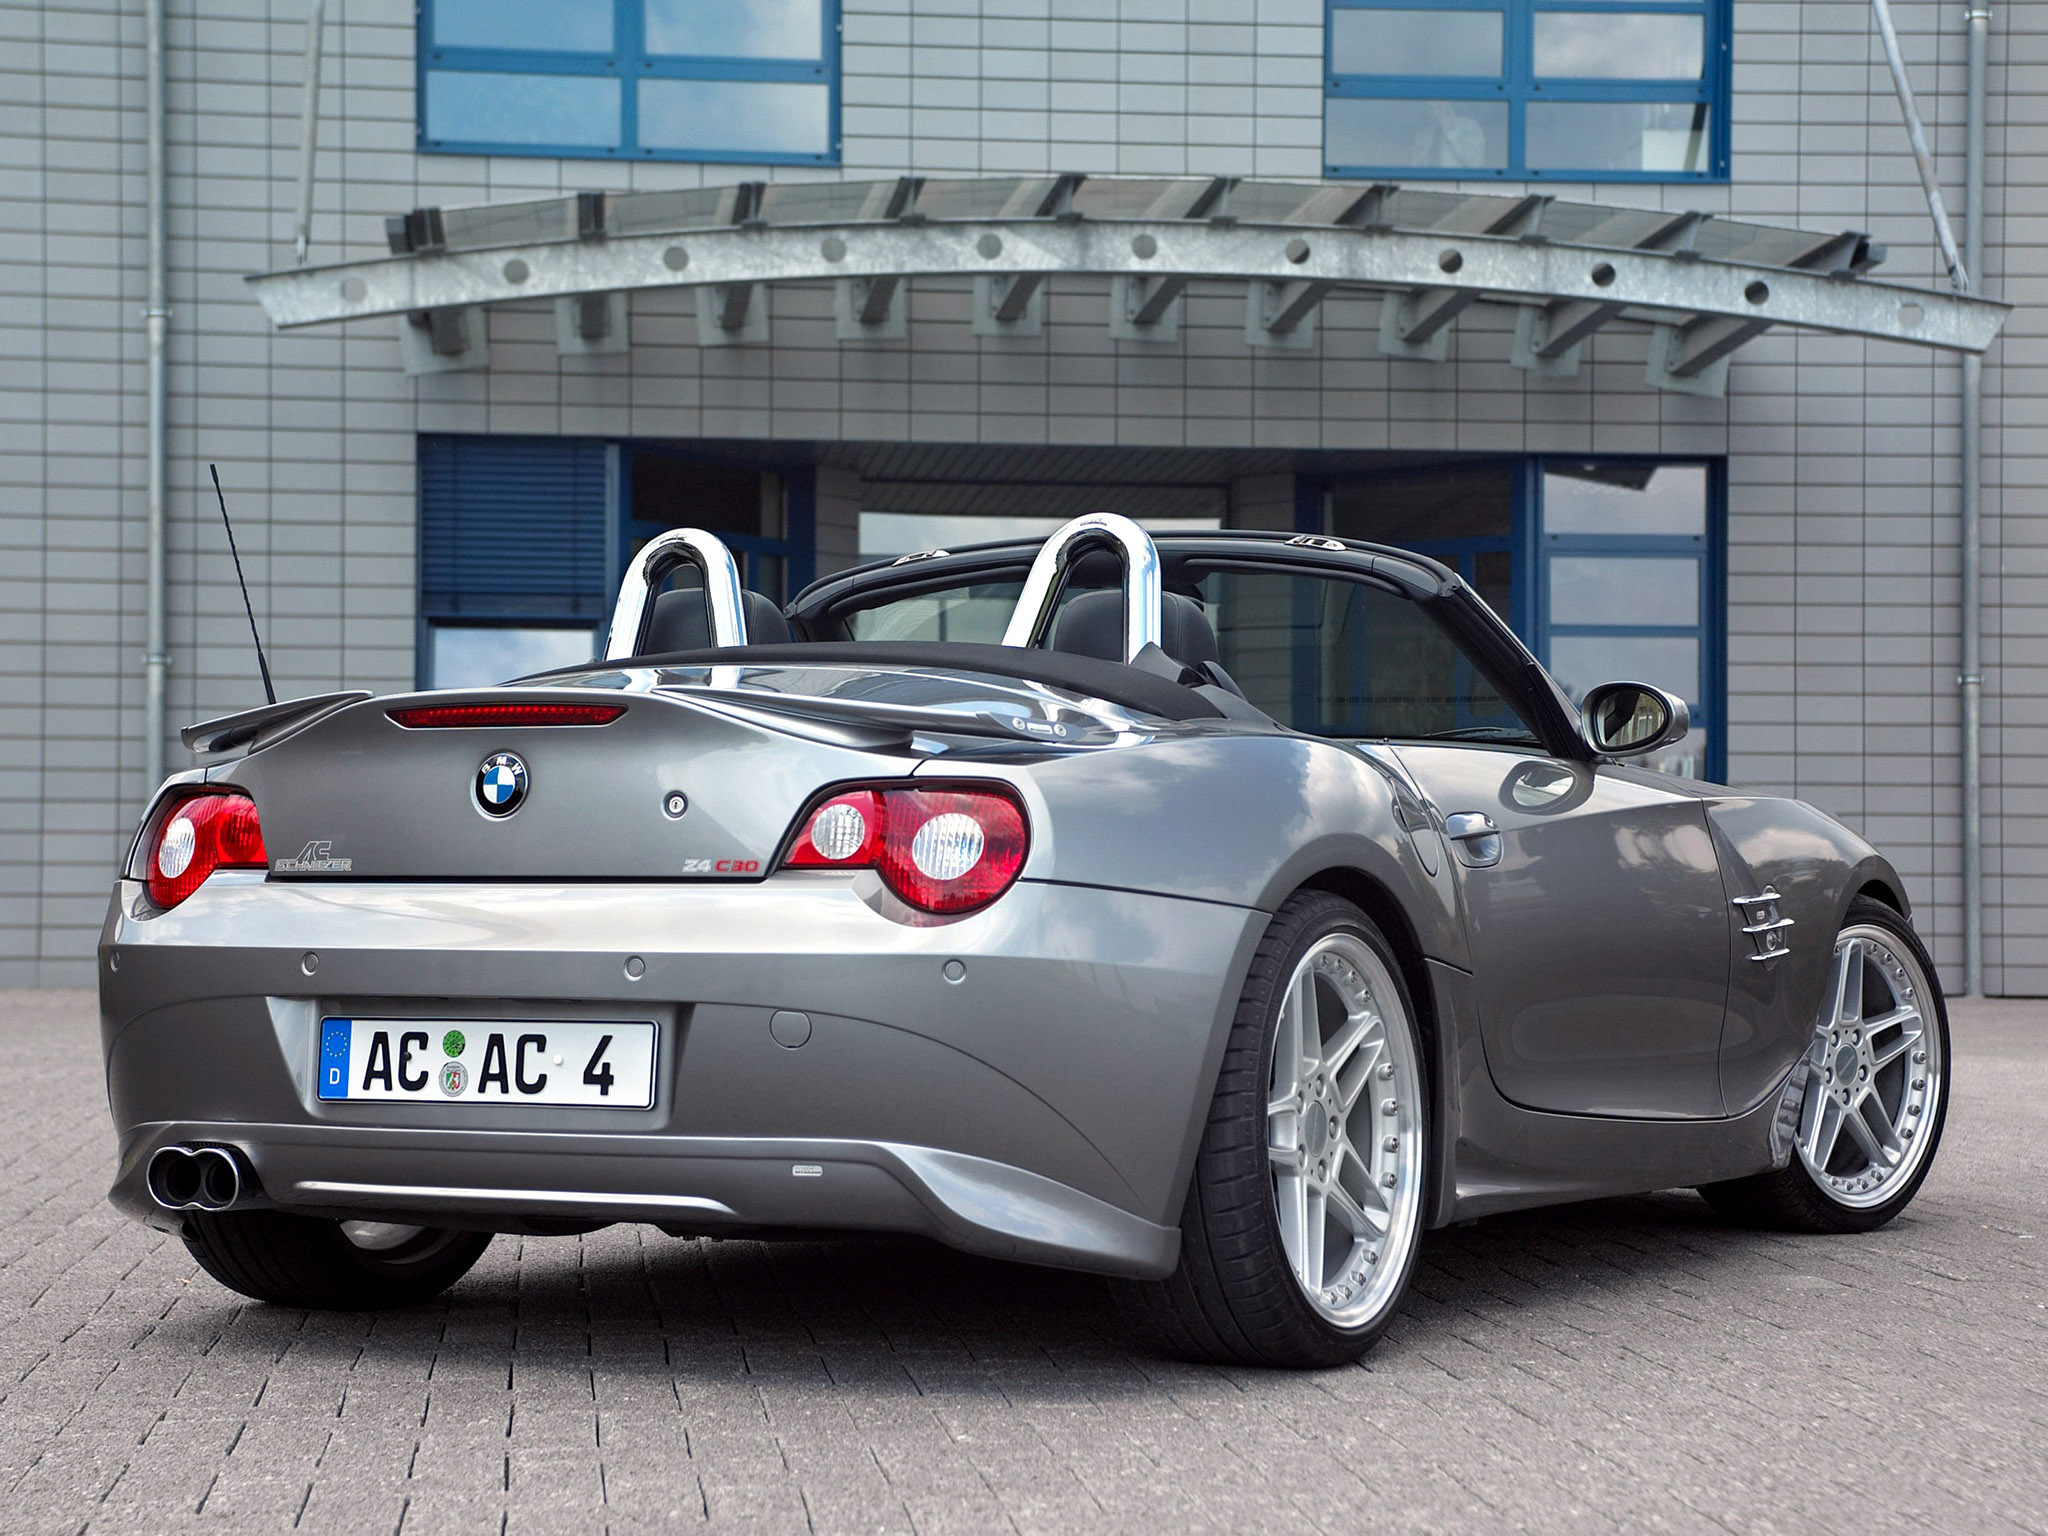 Bmw Z4 2005 Review Amazing Pictures And Images Look At The Car